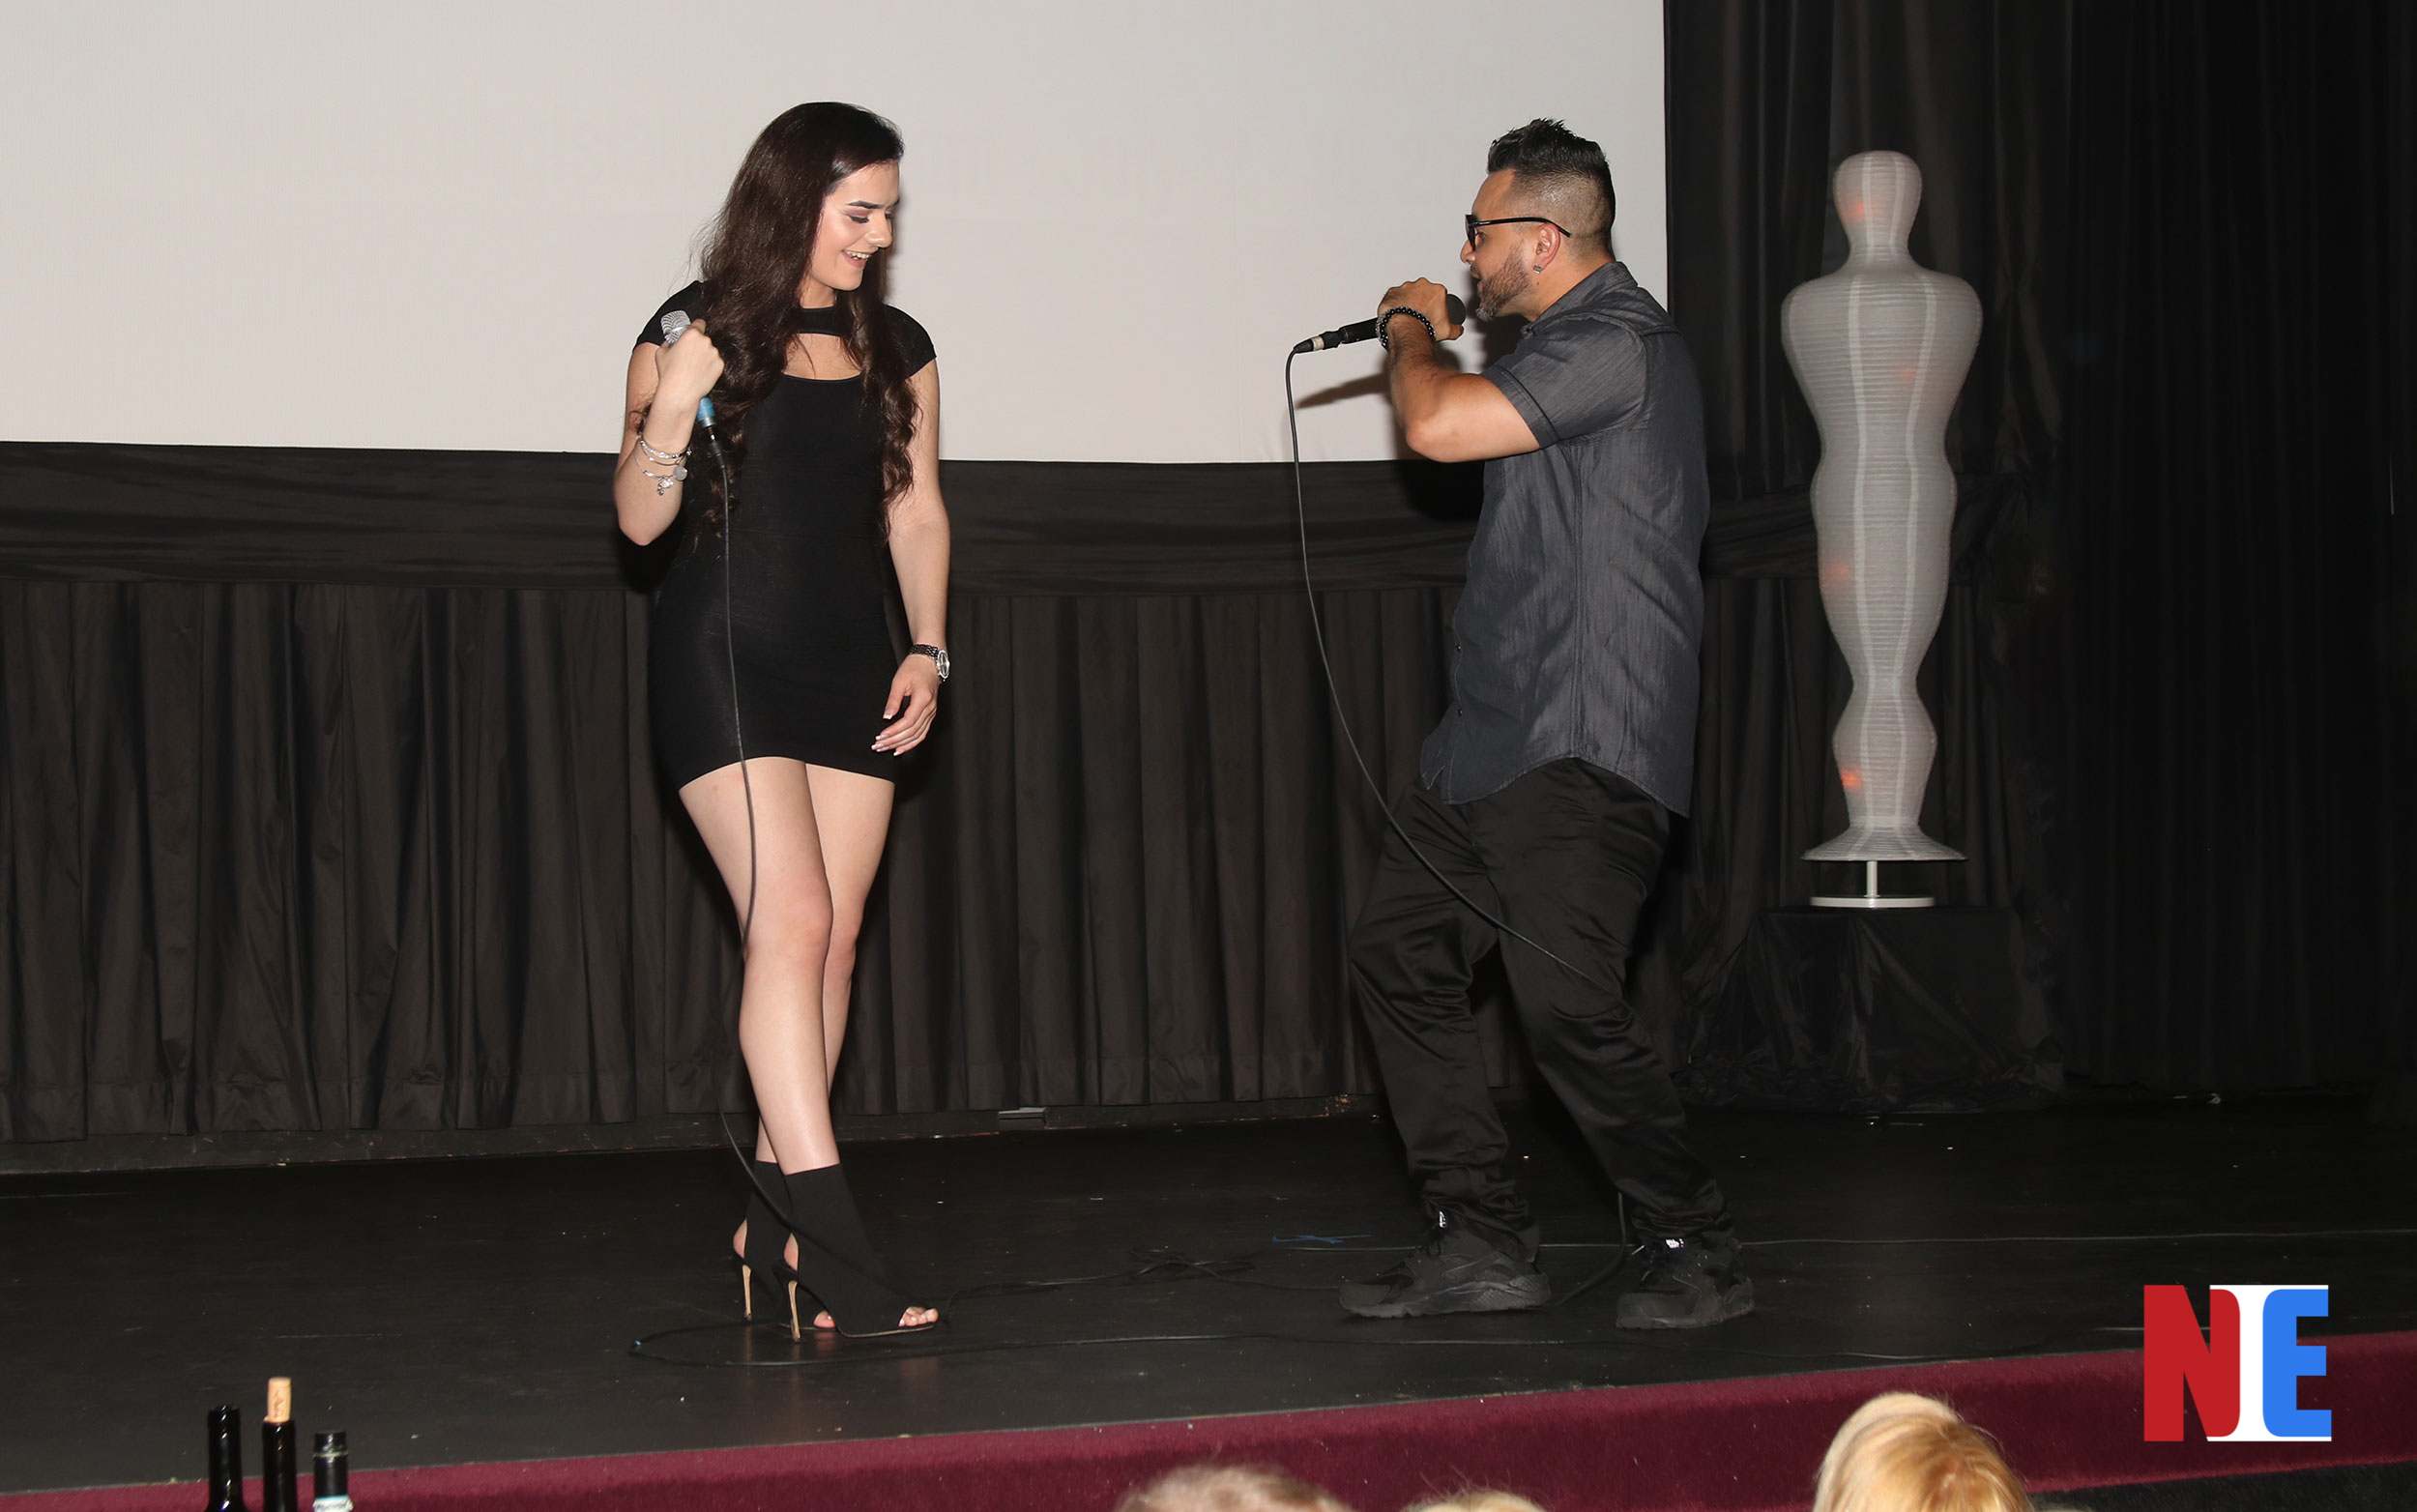 Sammi Rae and Los Vegas perform at the red carpet award ceremony for the Long Island International Film Expo at the Bellmore Movies and Showplace in New York on July 18, 2019 |  Courtesy of NIE